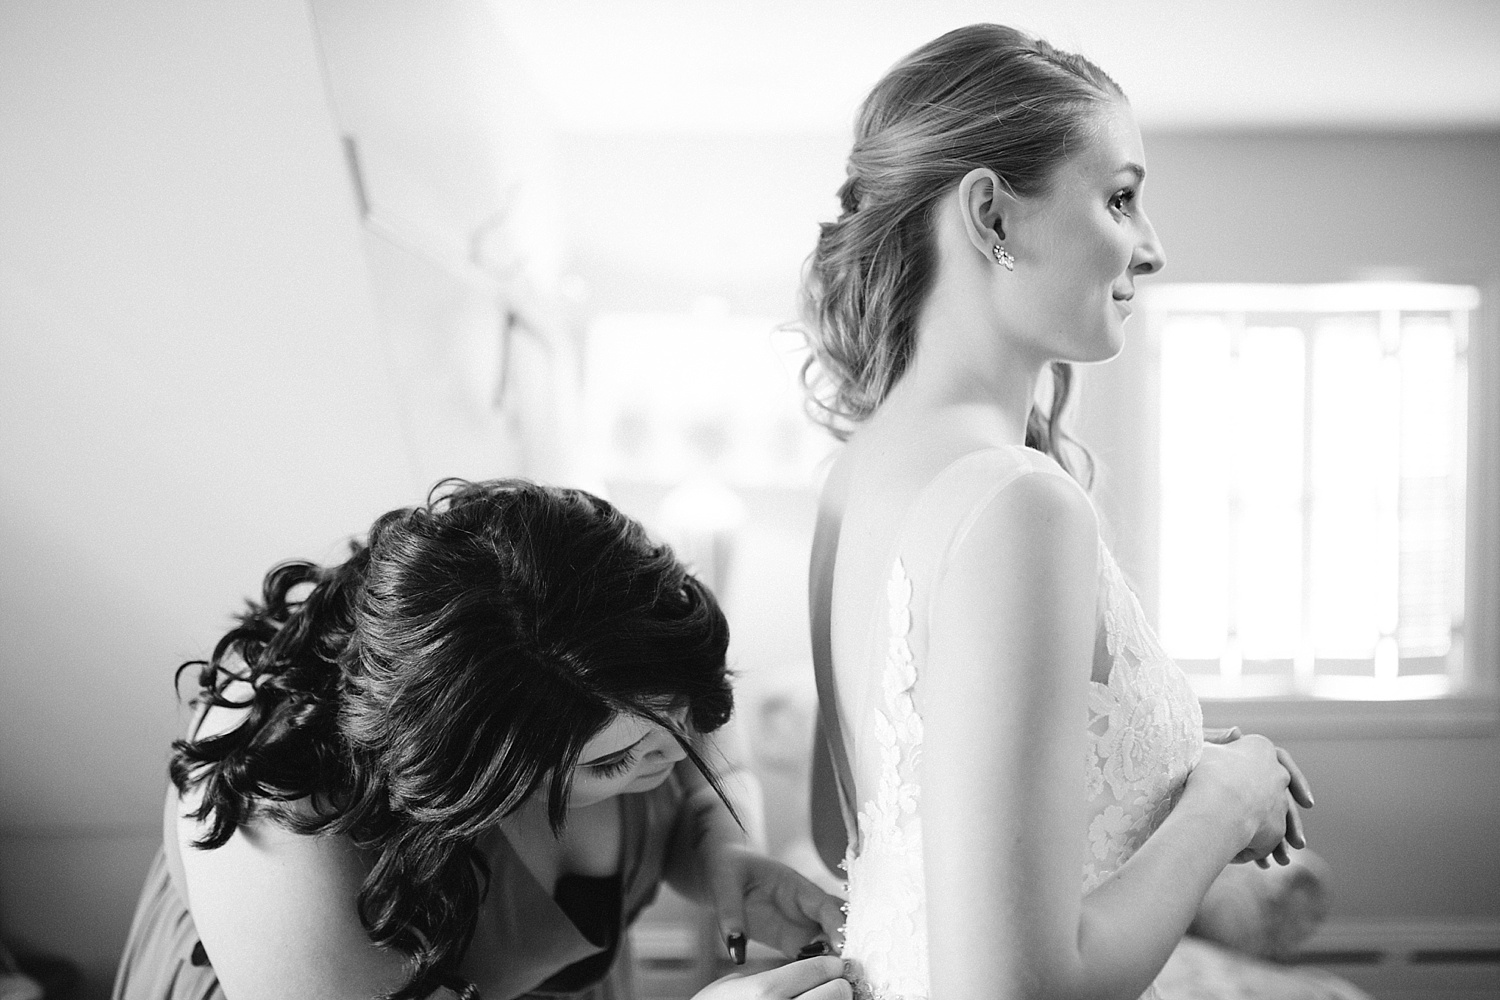 jessdavid_barnonbridge_phoenixville_winter_wedding_image_037.jpg